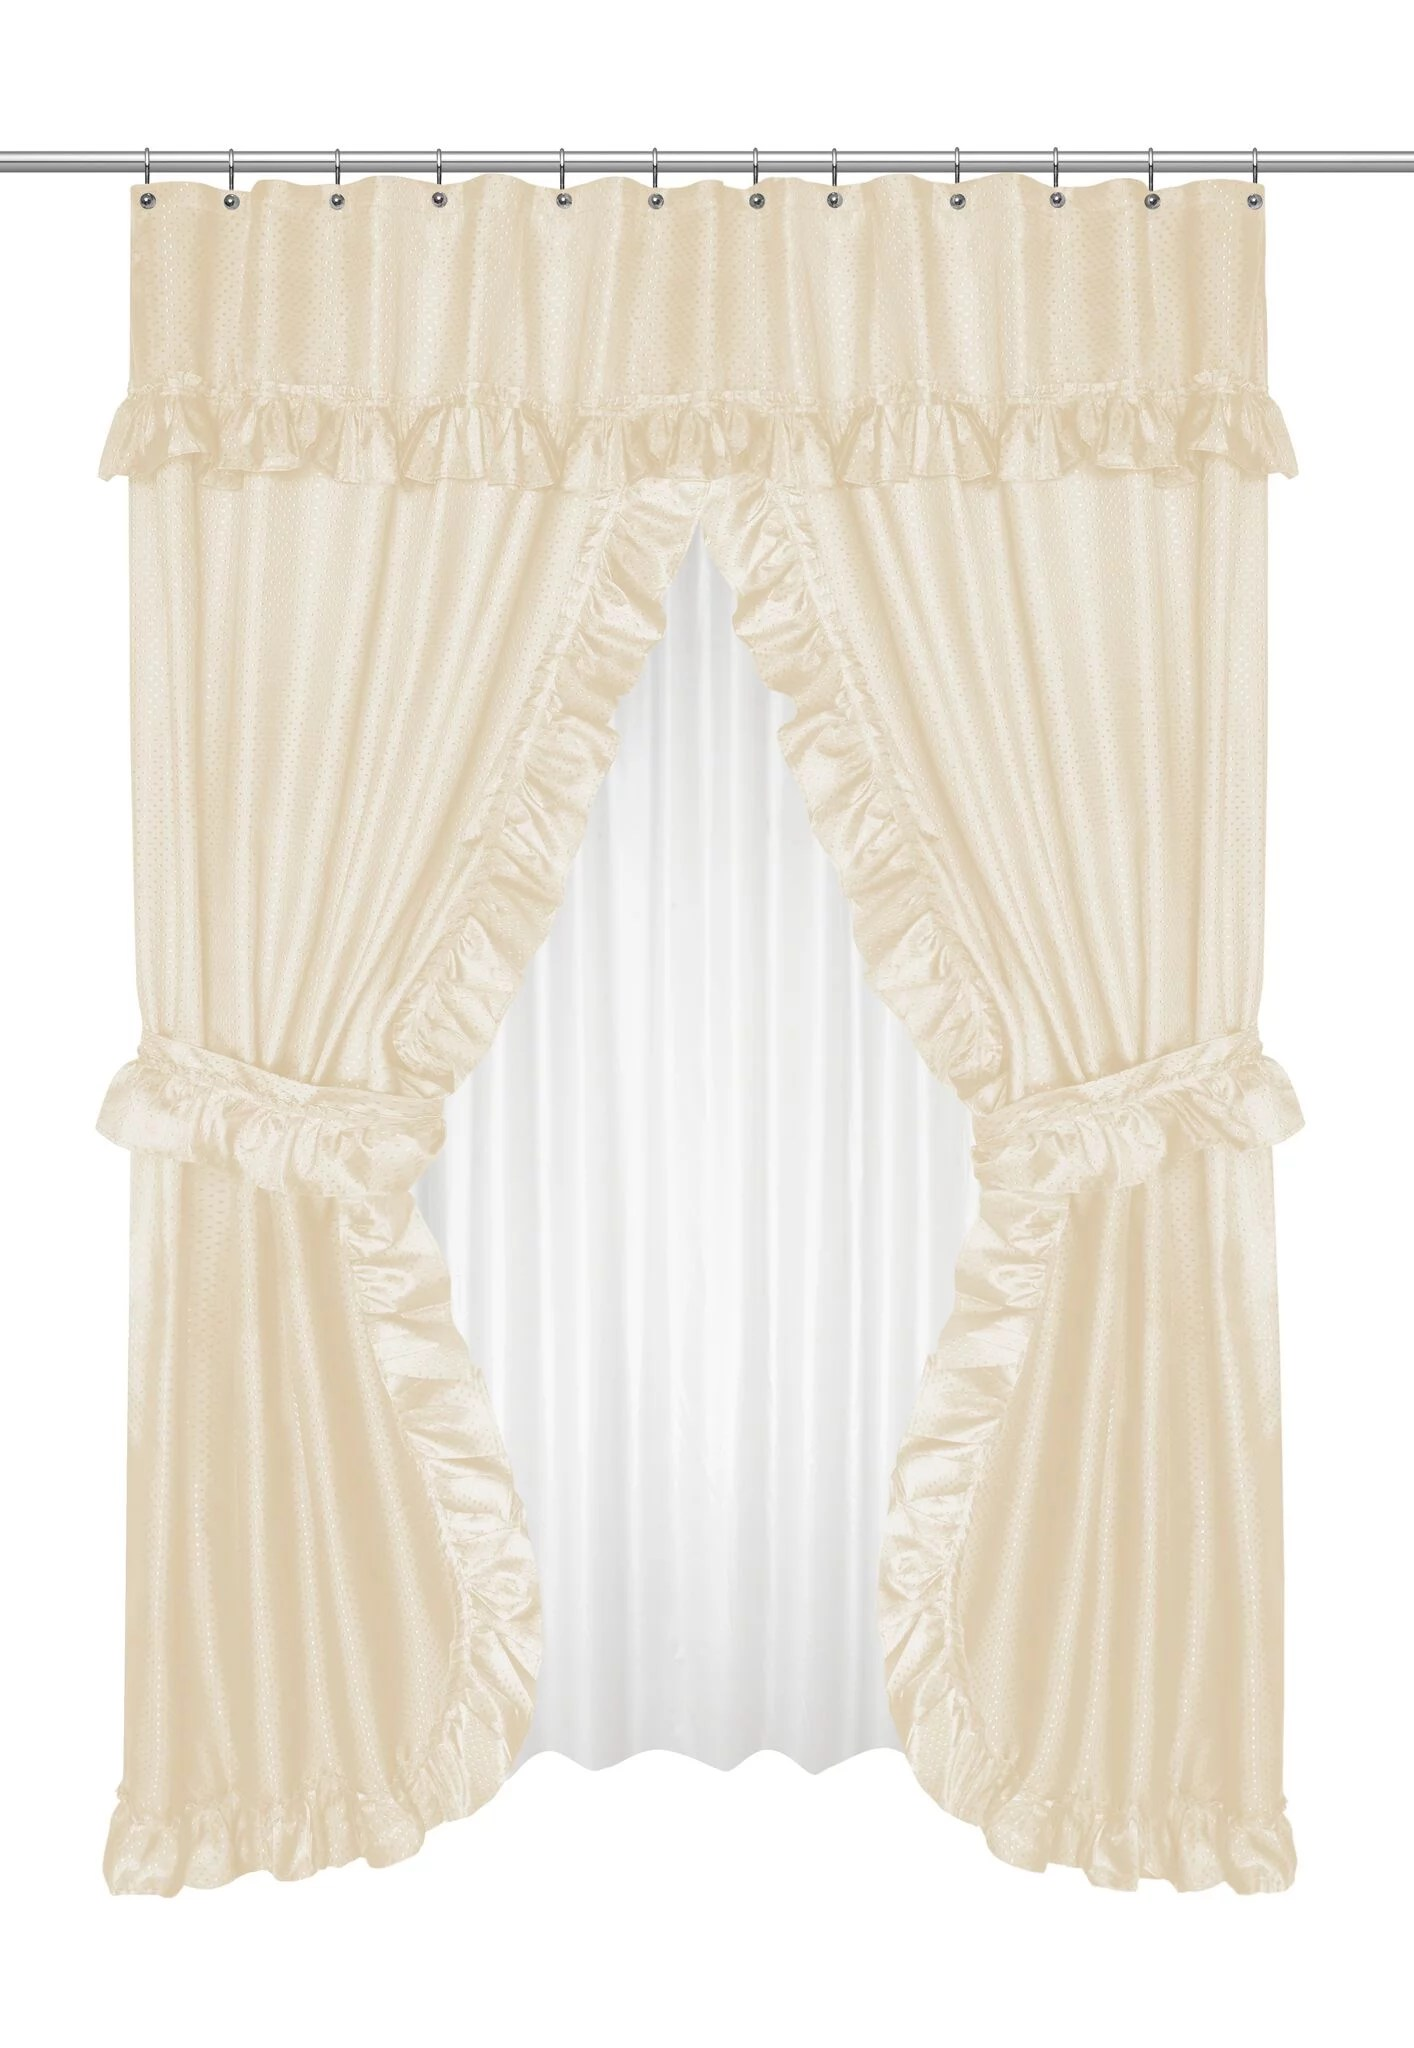 Goodgram Lauren Complete 5 Piece Attached Shower Curtain